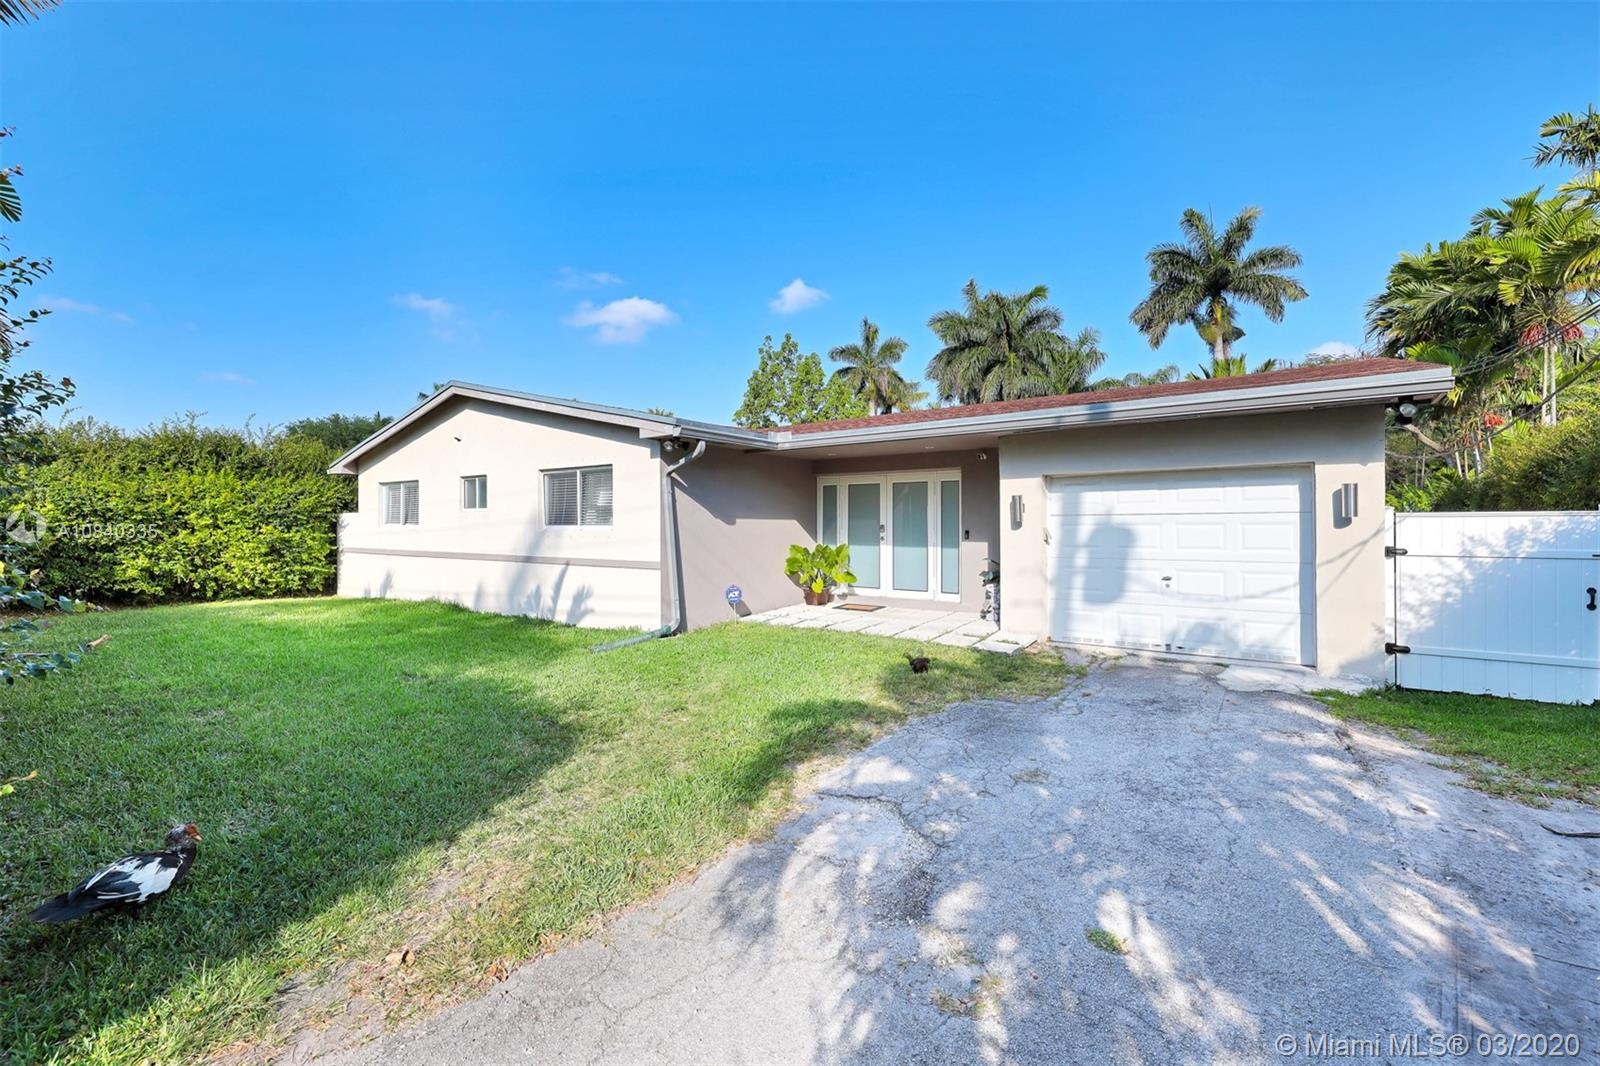 14850 S Spur Dr, Miami Shores, Florida